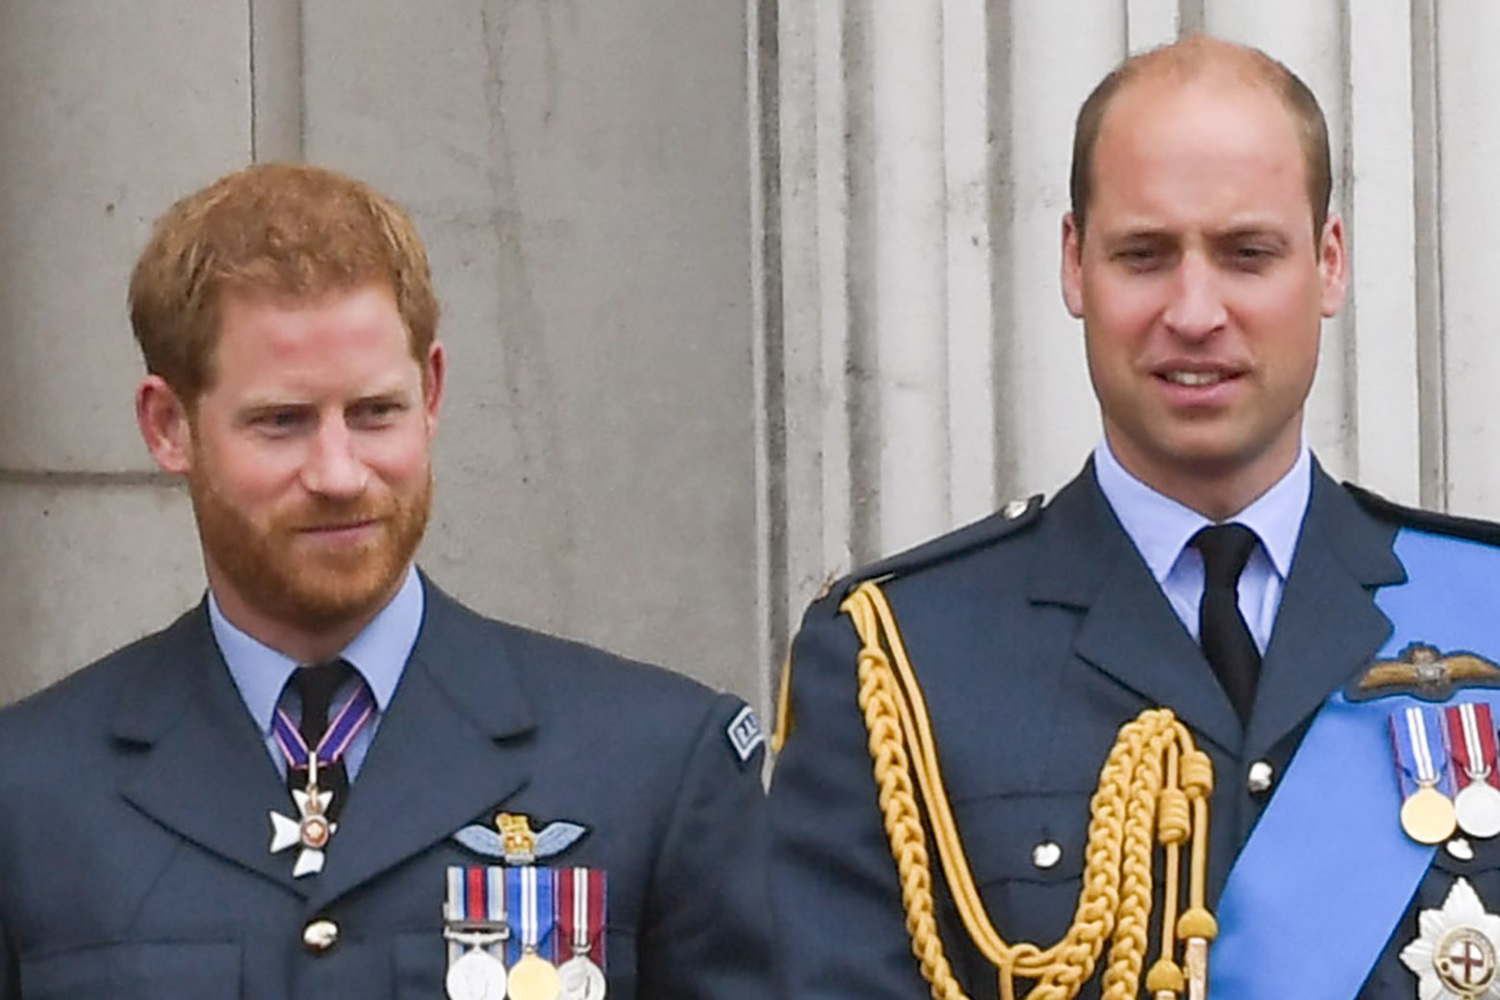 'Anxious' Prince William 'keeping tabs on Harry in US via low-key Zoom chats'